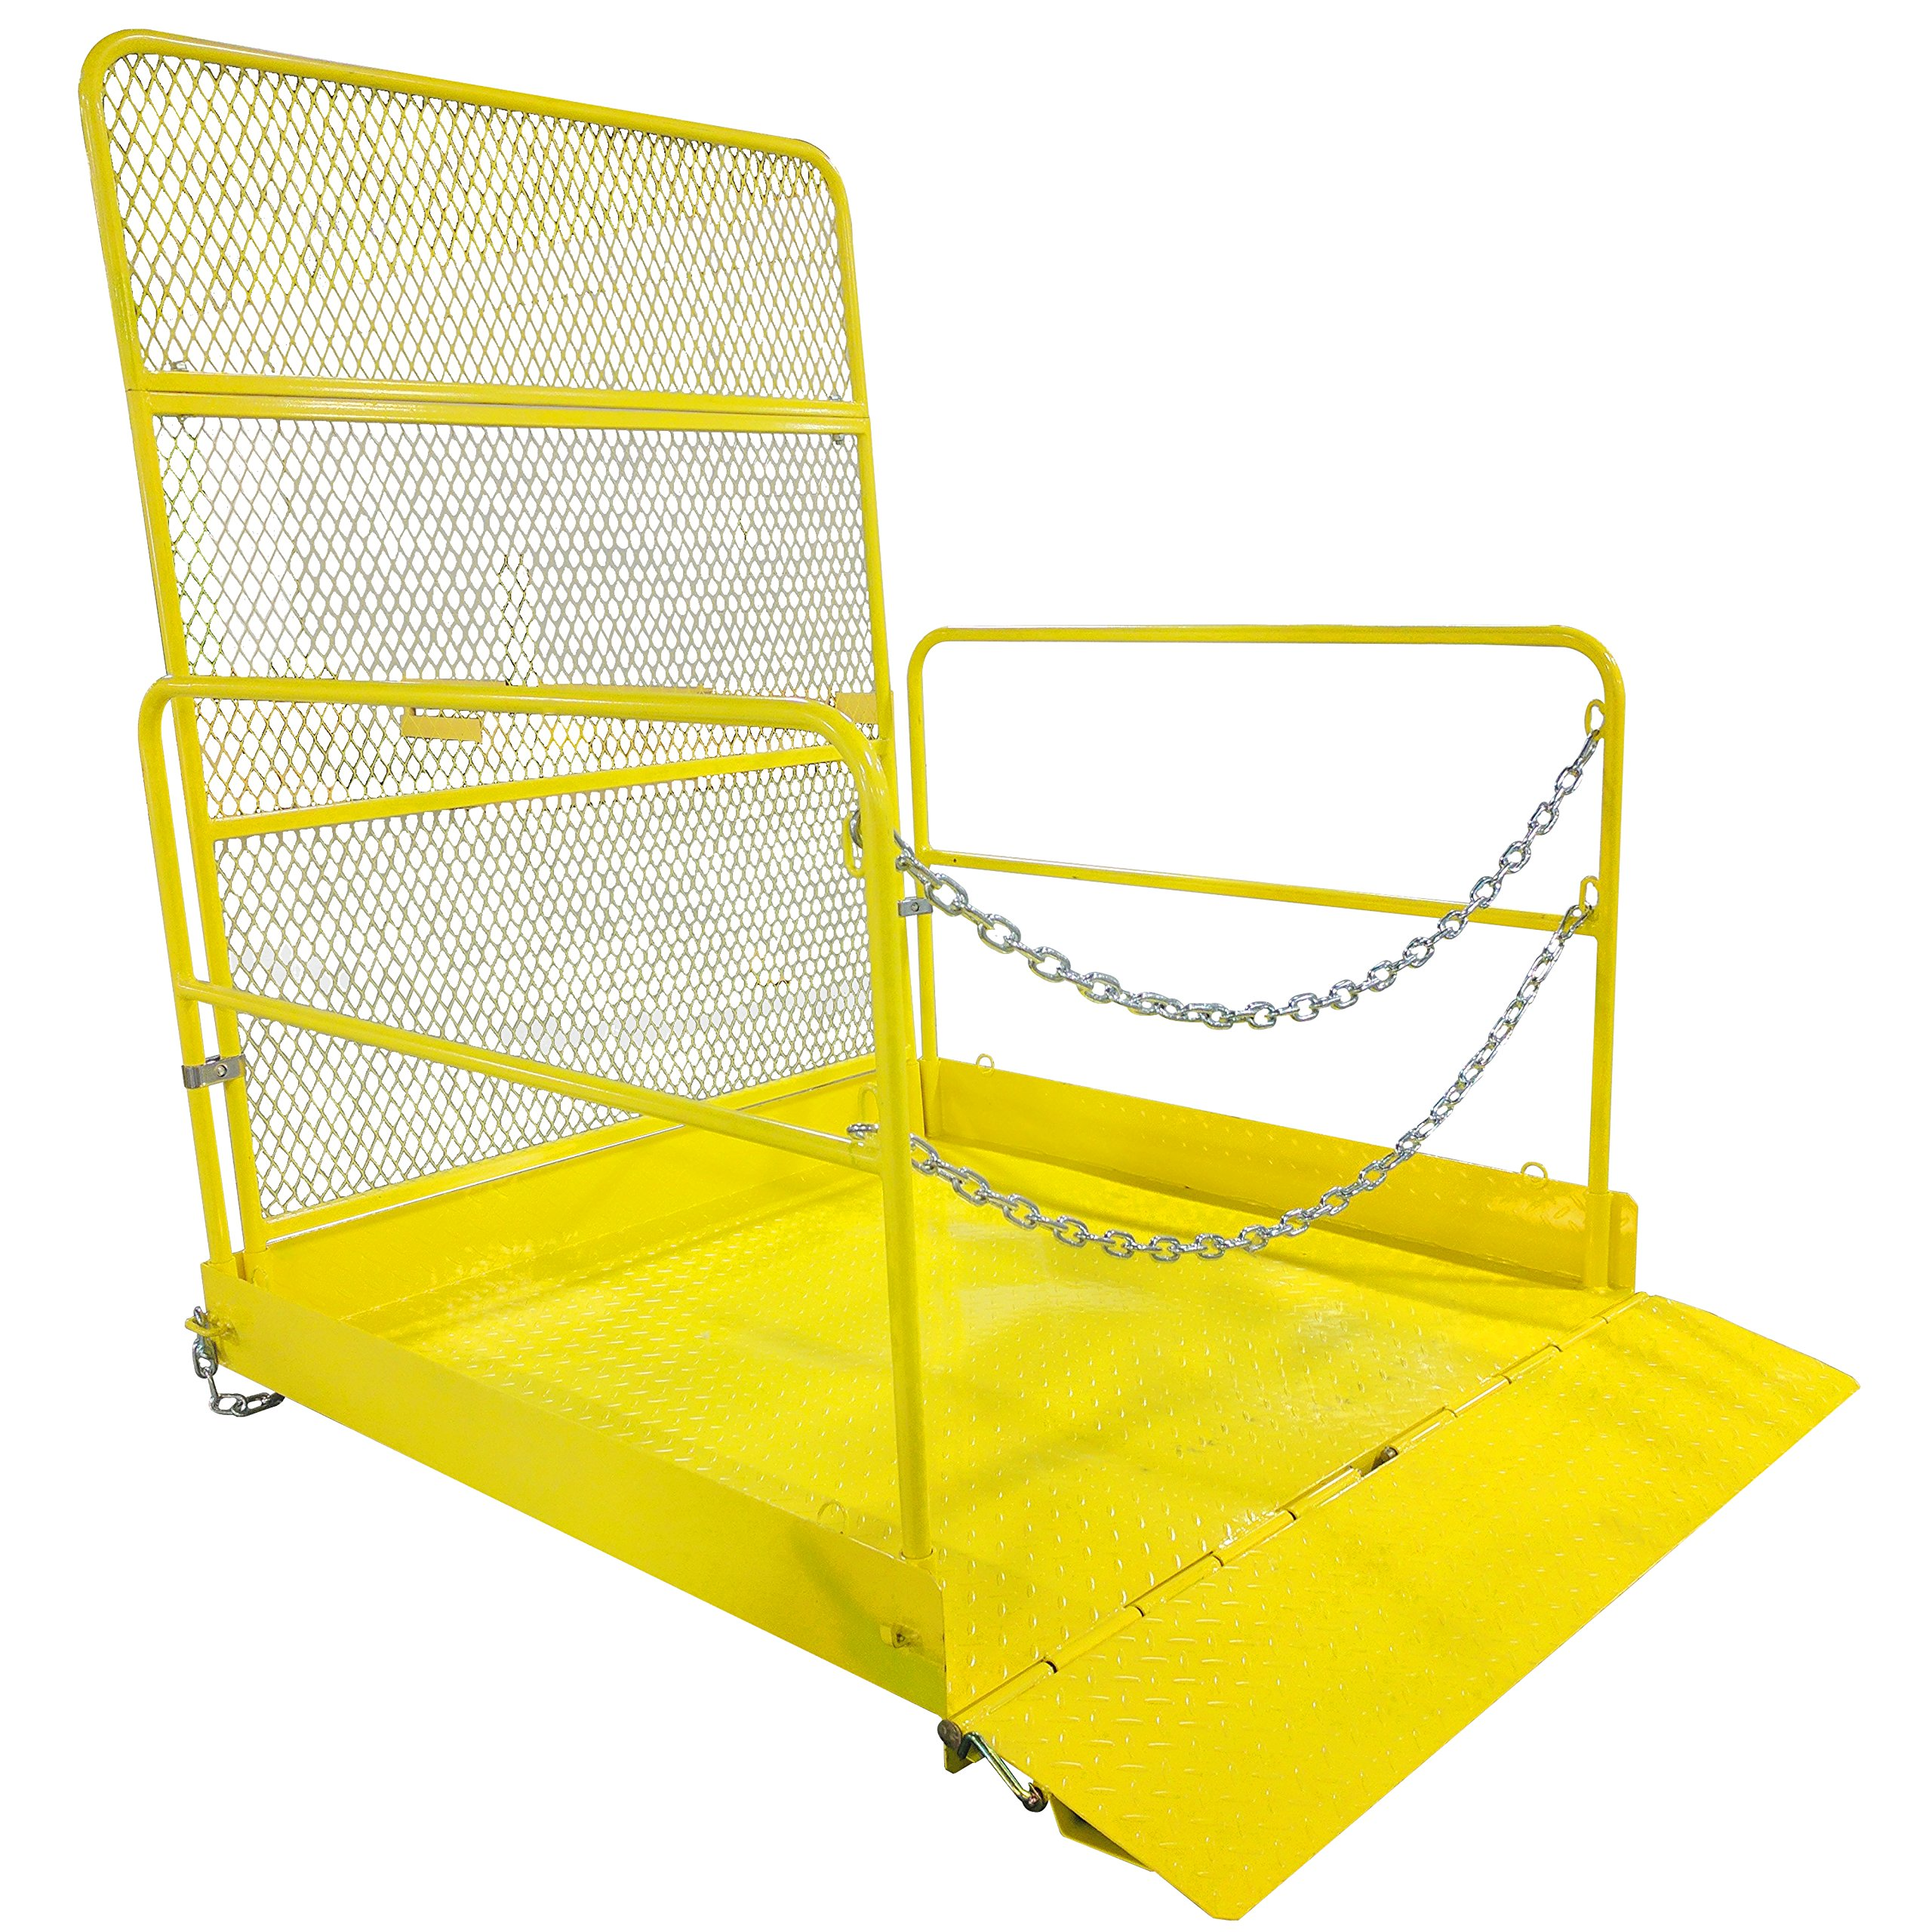 54'' x 54'' Loading Work Platform w/ Handrails - 2,000 LB Capacity by Titan Attachments (Image #1)